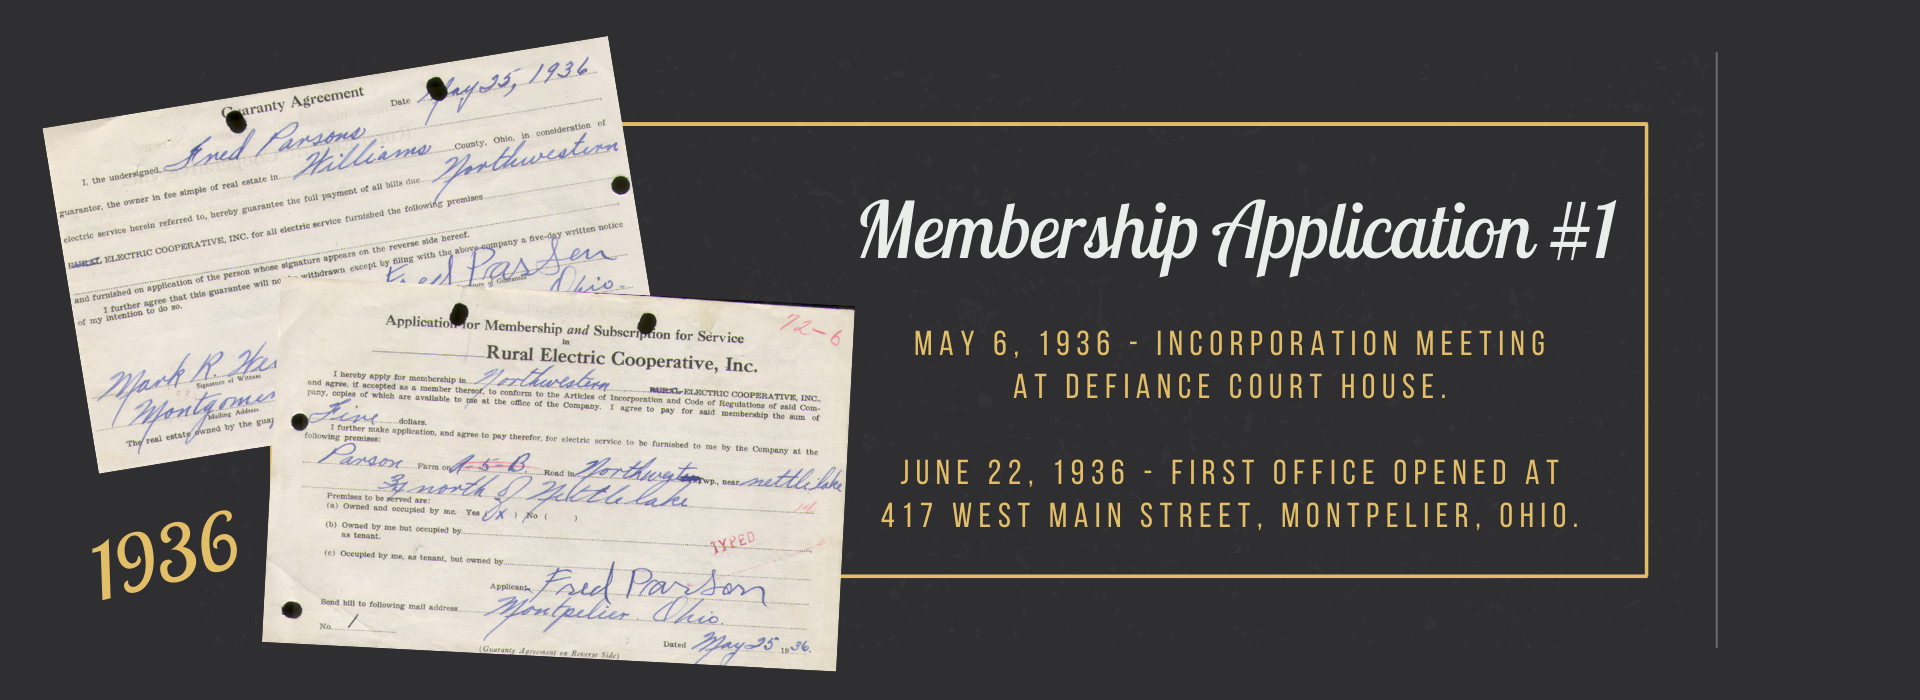 May 6, 1936 - Incorporation meeting  at Defiance Court House.   June 22, 1936 - First office opened at  417 West Main Street, Montpelier, OHio.